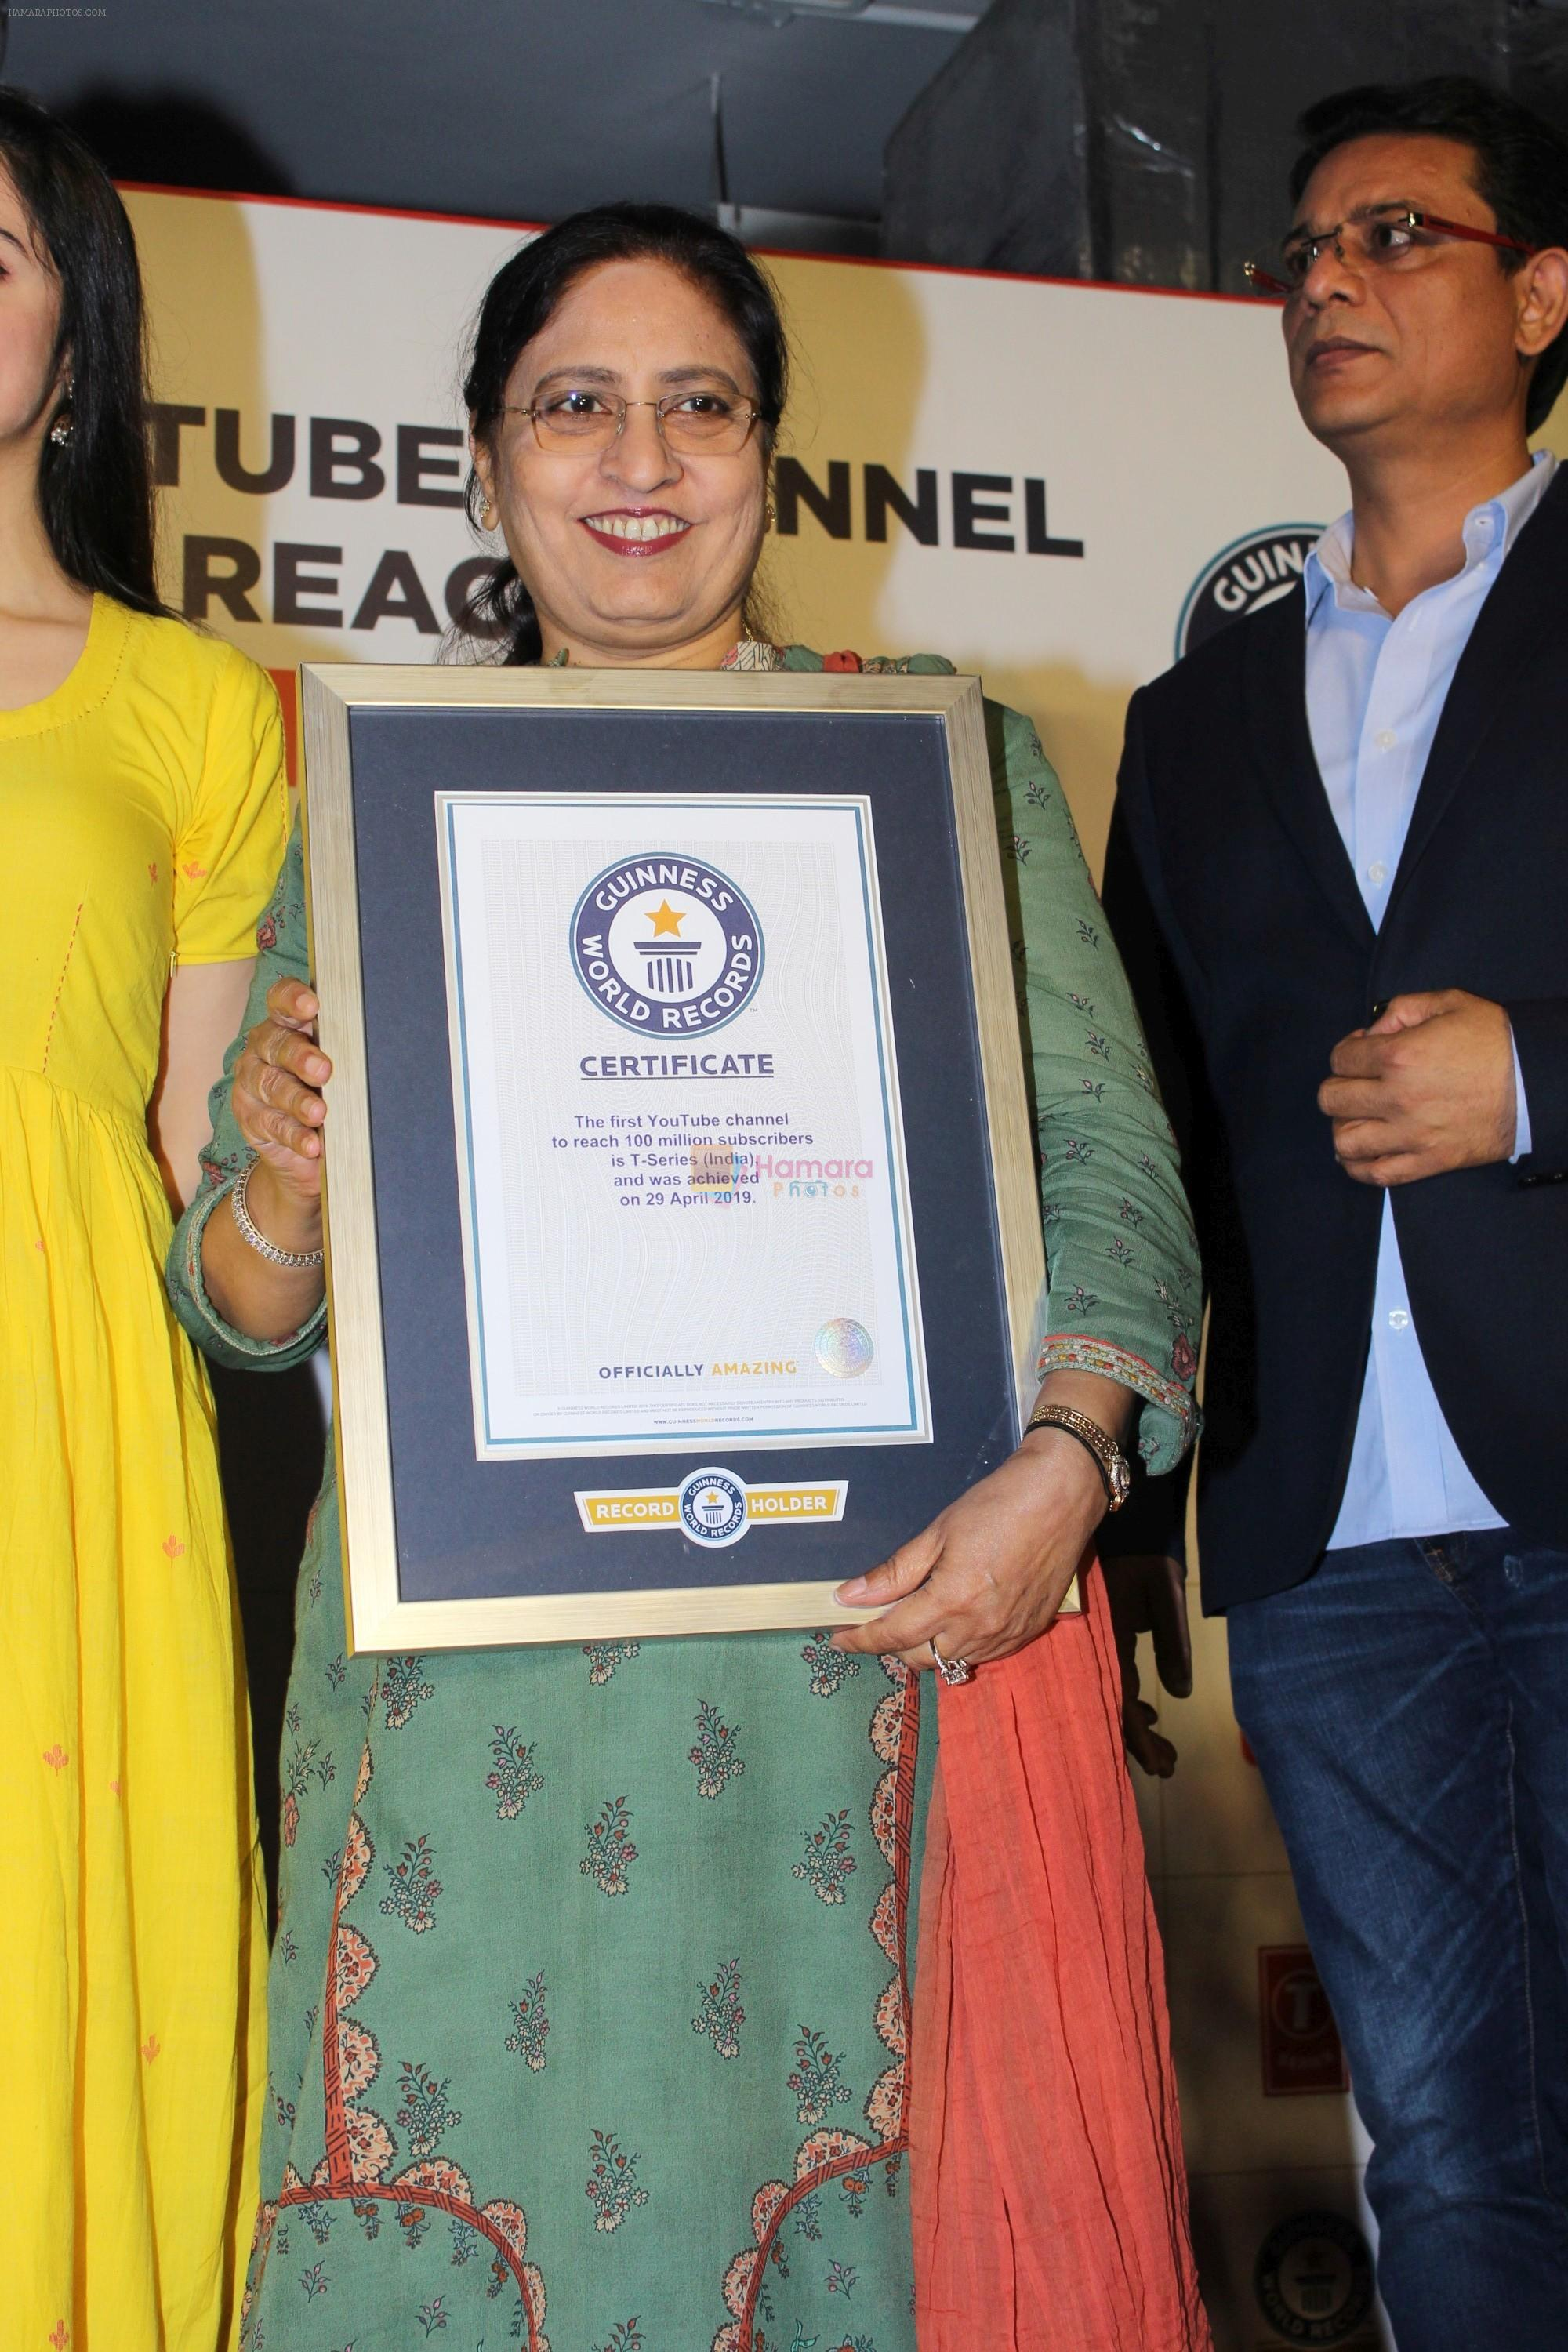 Bhushan Kumar has been felicitated with an official certificate from Guinness World Records as T-Series became the first YouTube channel to reach 100 million subscribers on 17th June 2019